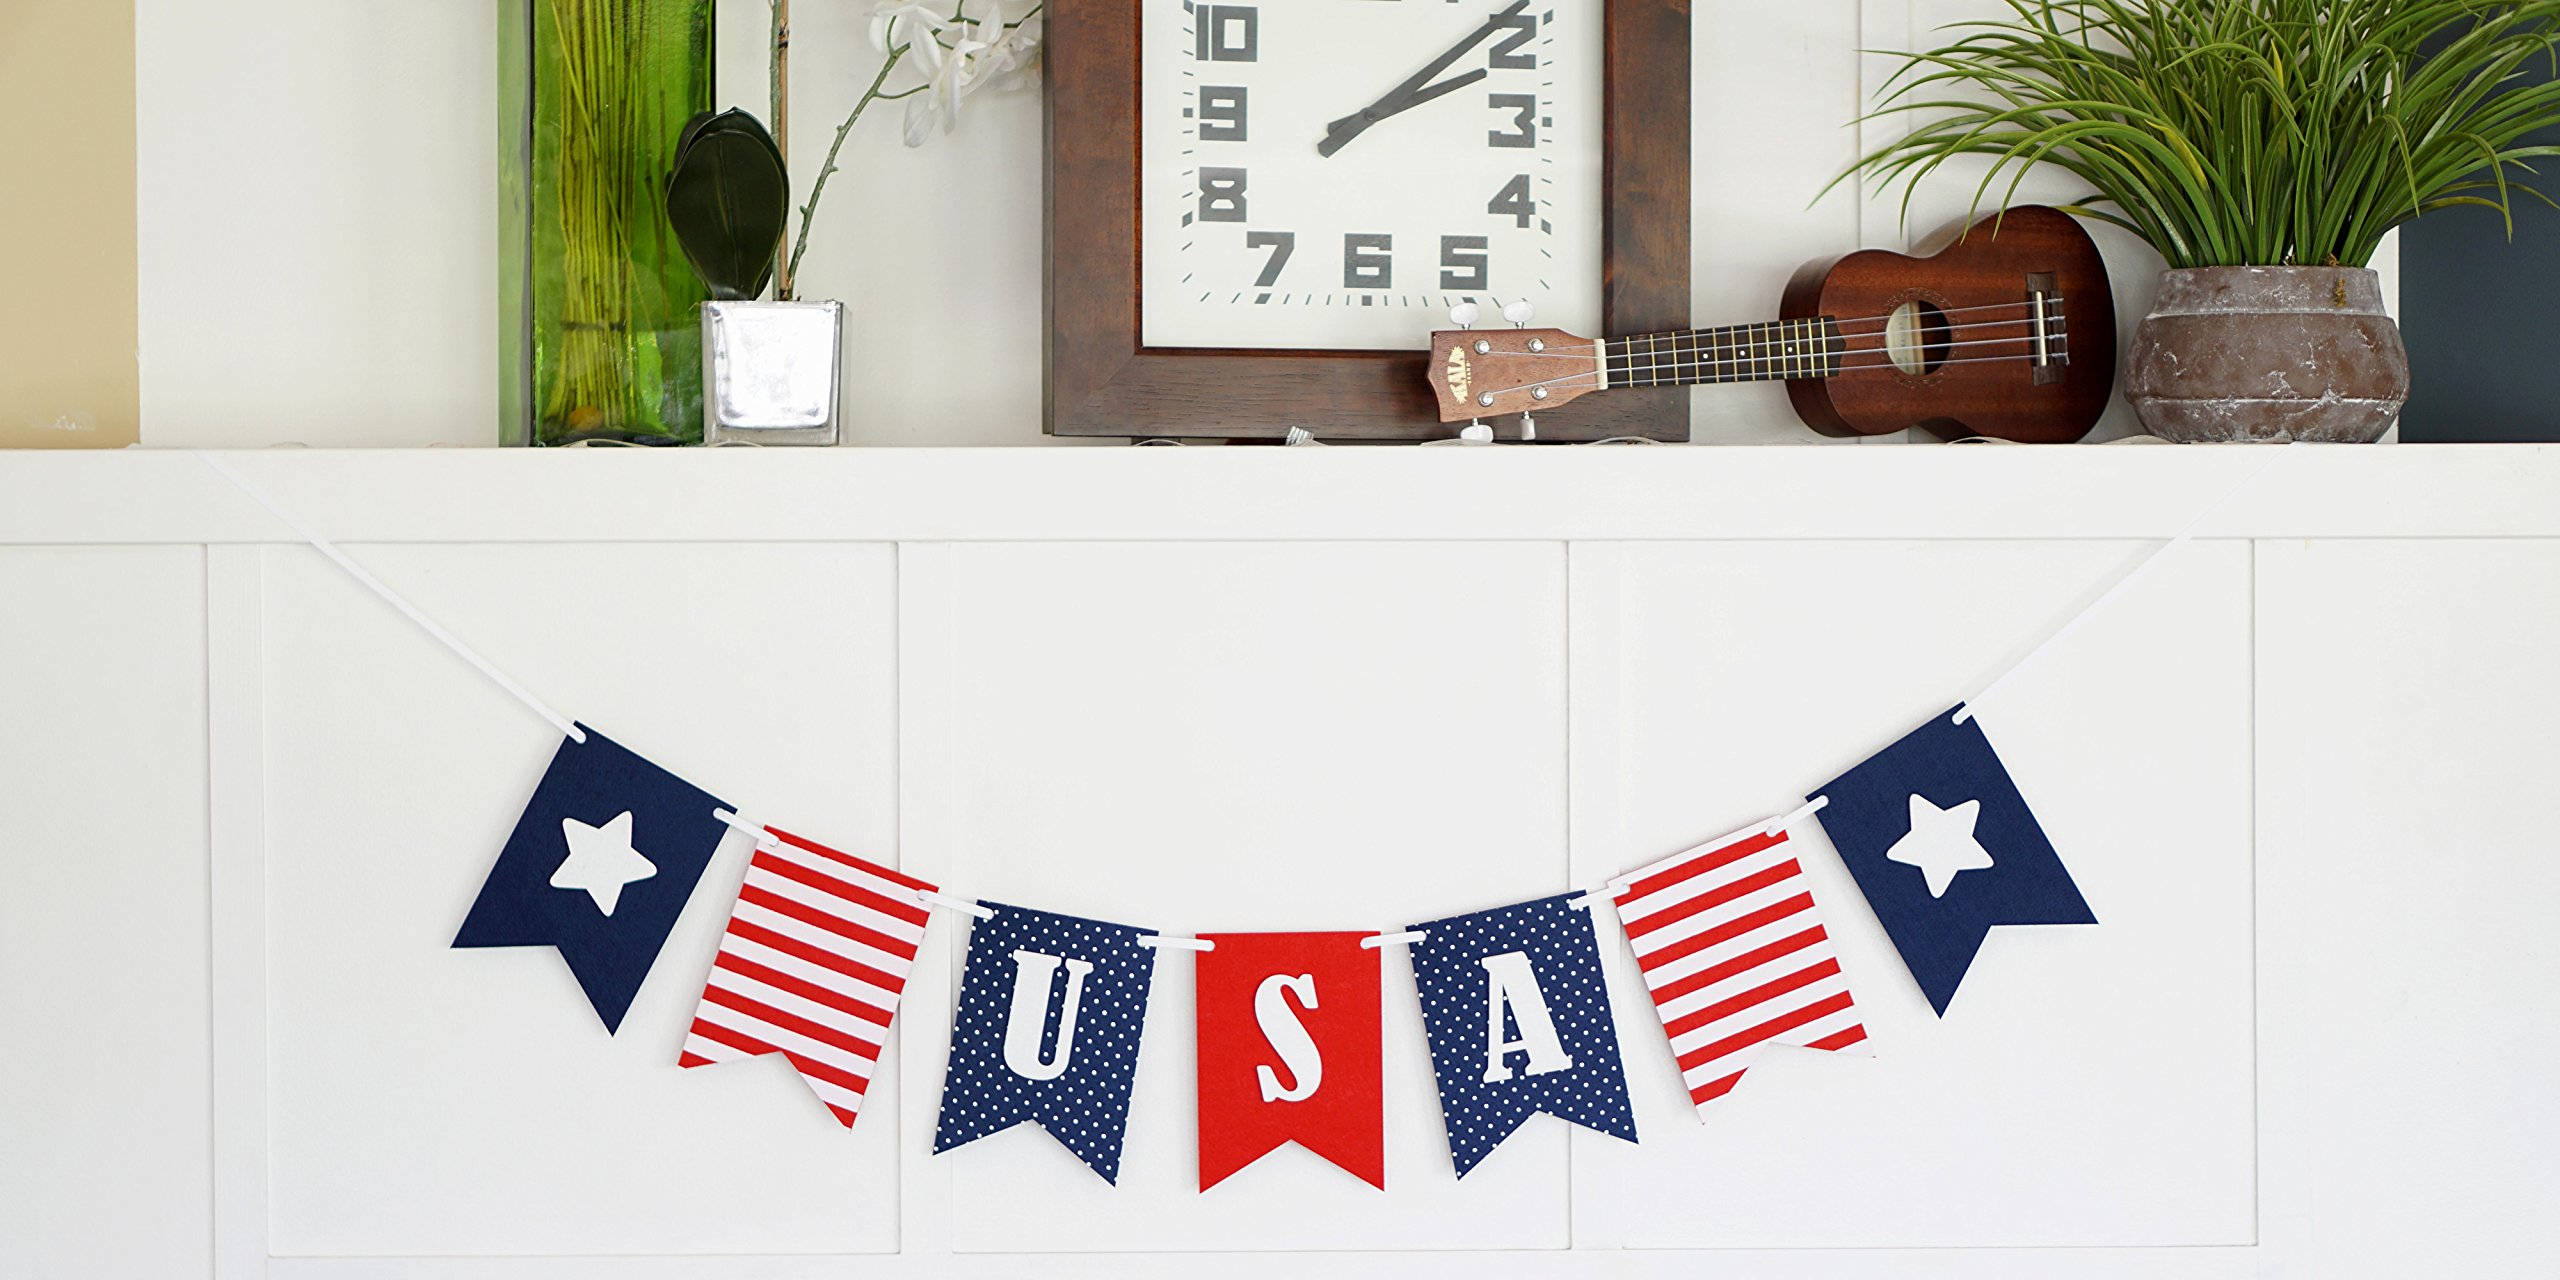 USA Banner Bunting Laser Cut Felt 40 inches wide - Patriotic Americana Red, White, & Blue America! by Decomod (Image #3)